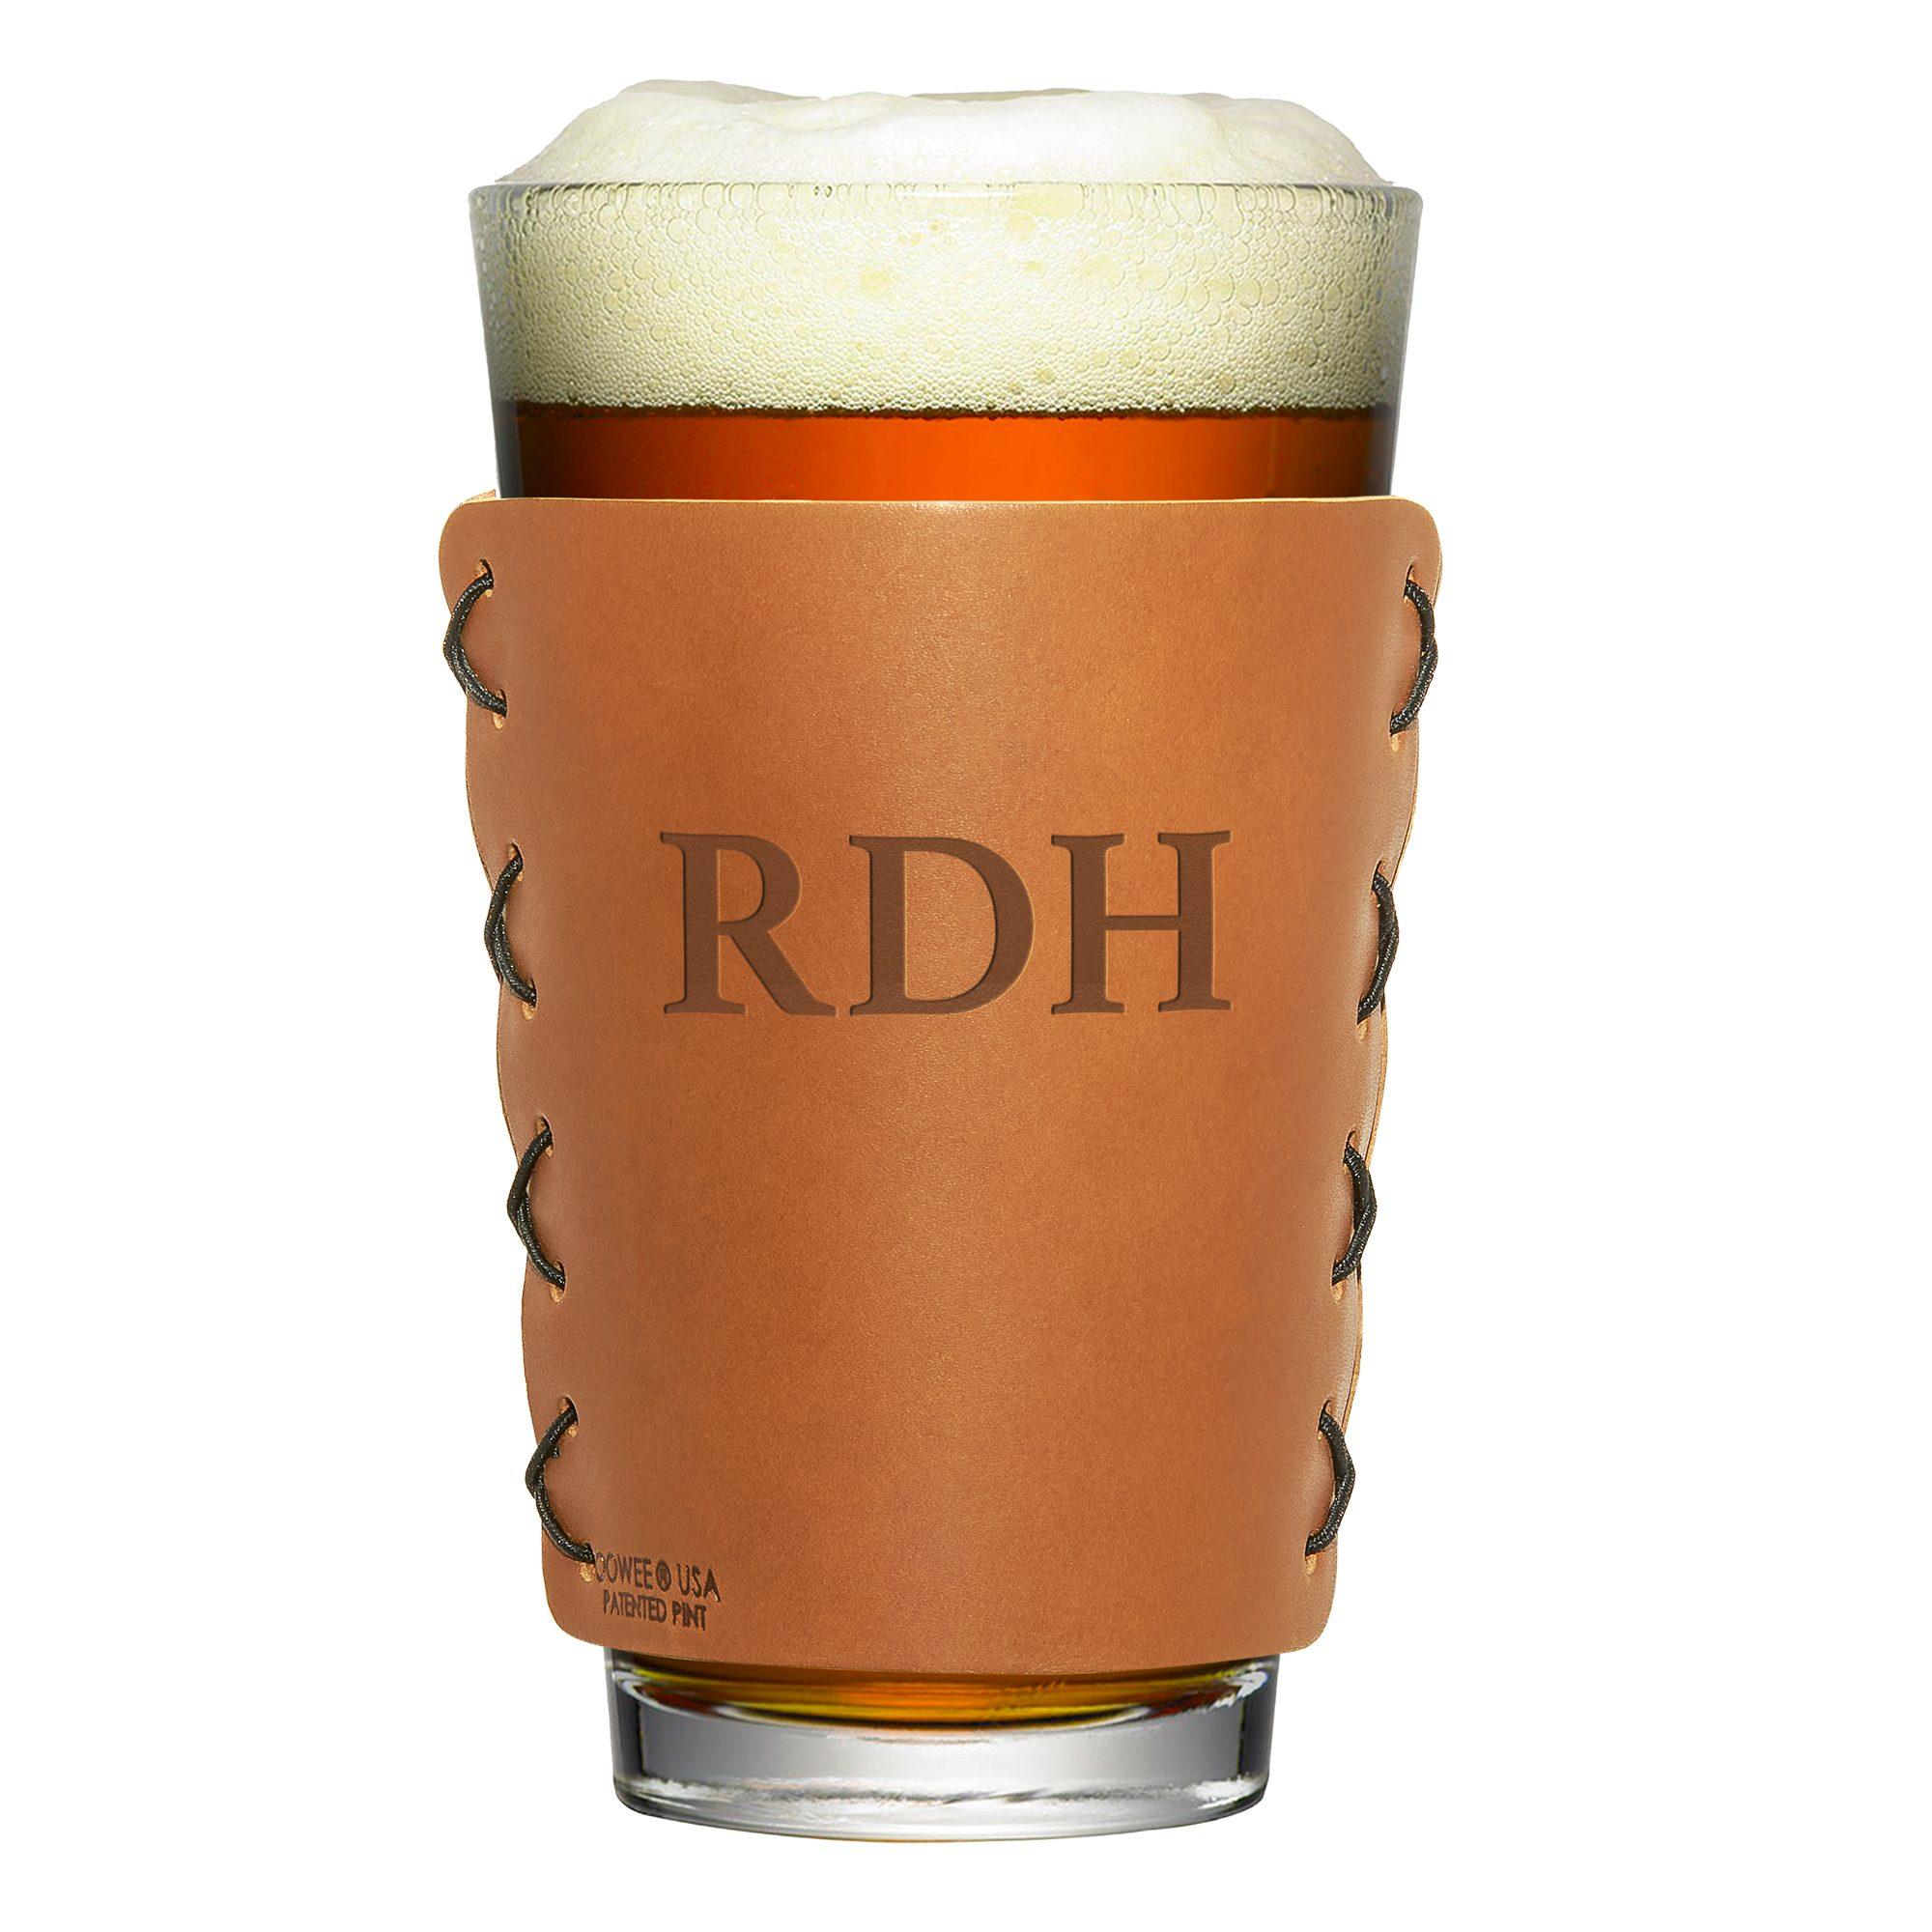 Personalized Leather Pint Holder with Initials; 16-oz Pint Glass